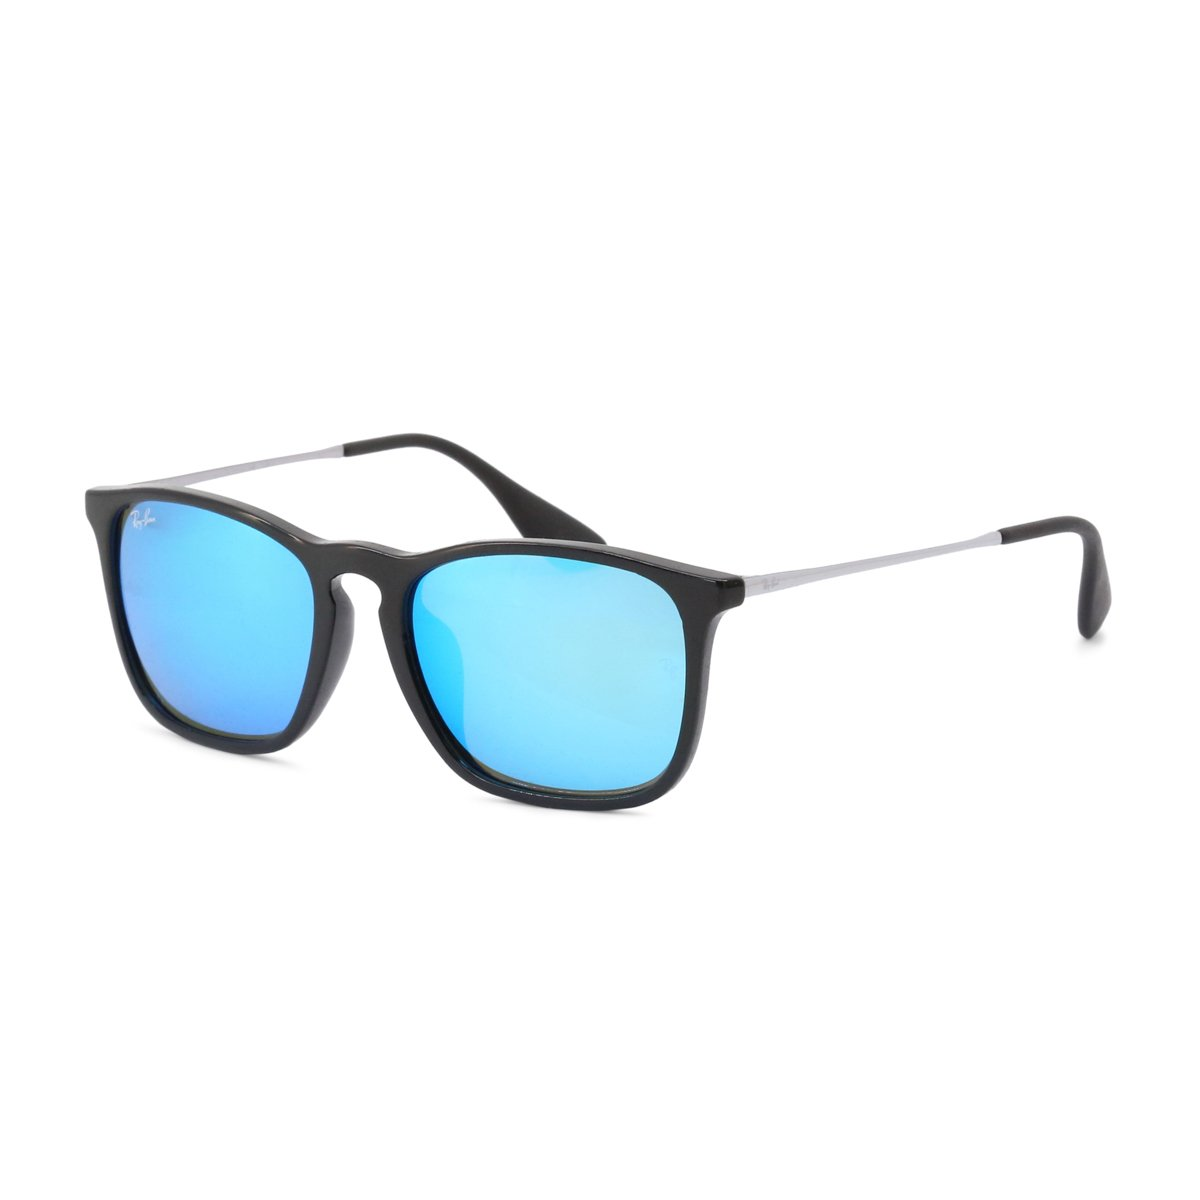 Ray-Ban Unisex Sunglasses Various Colours 0RB4187F - black NOSIZE